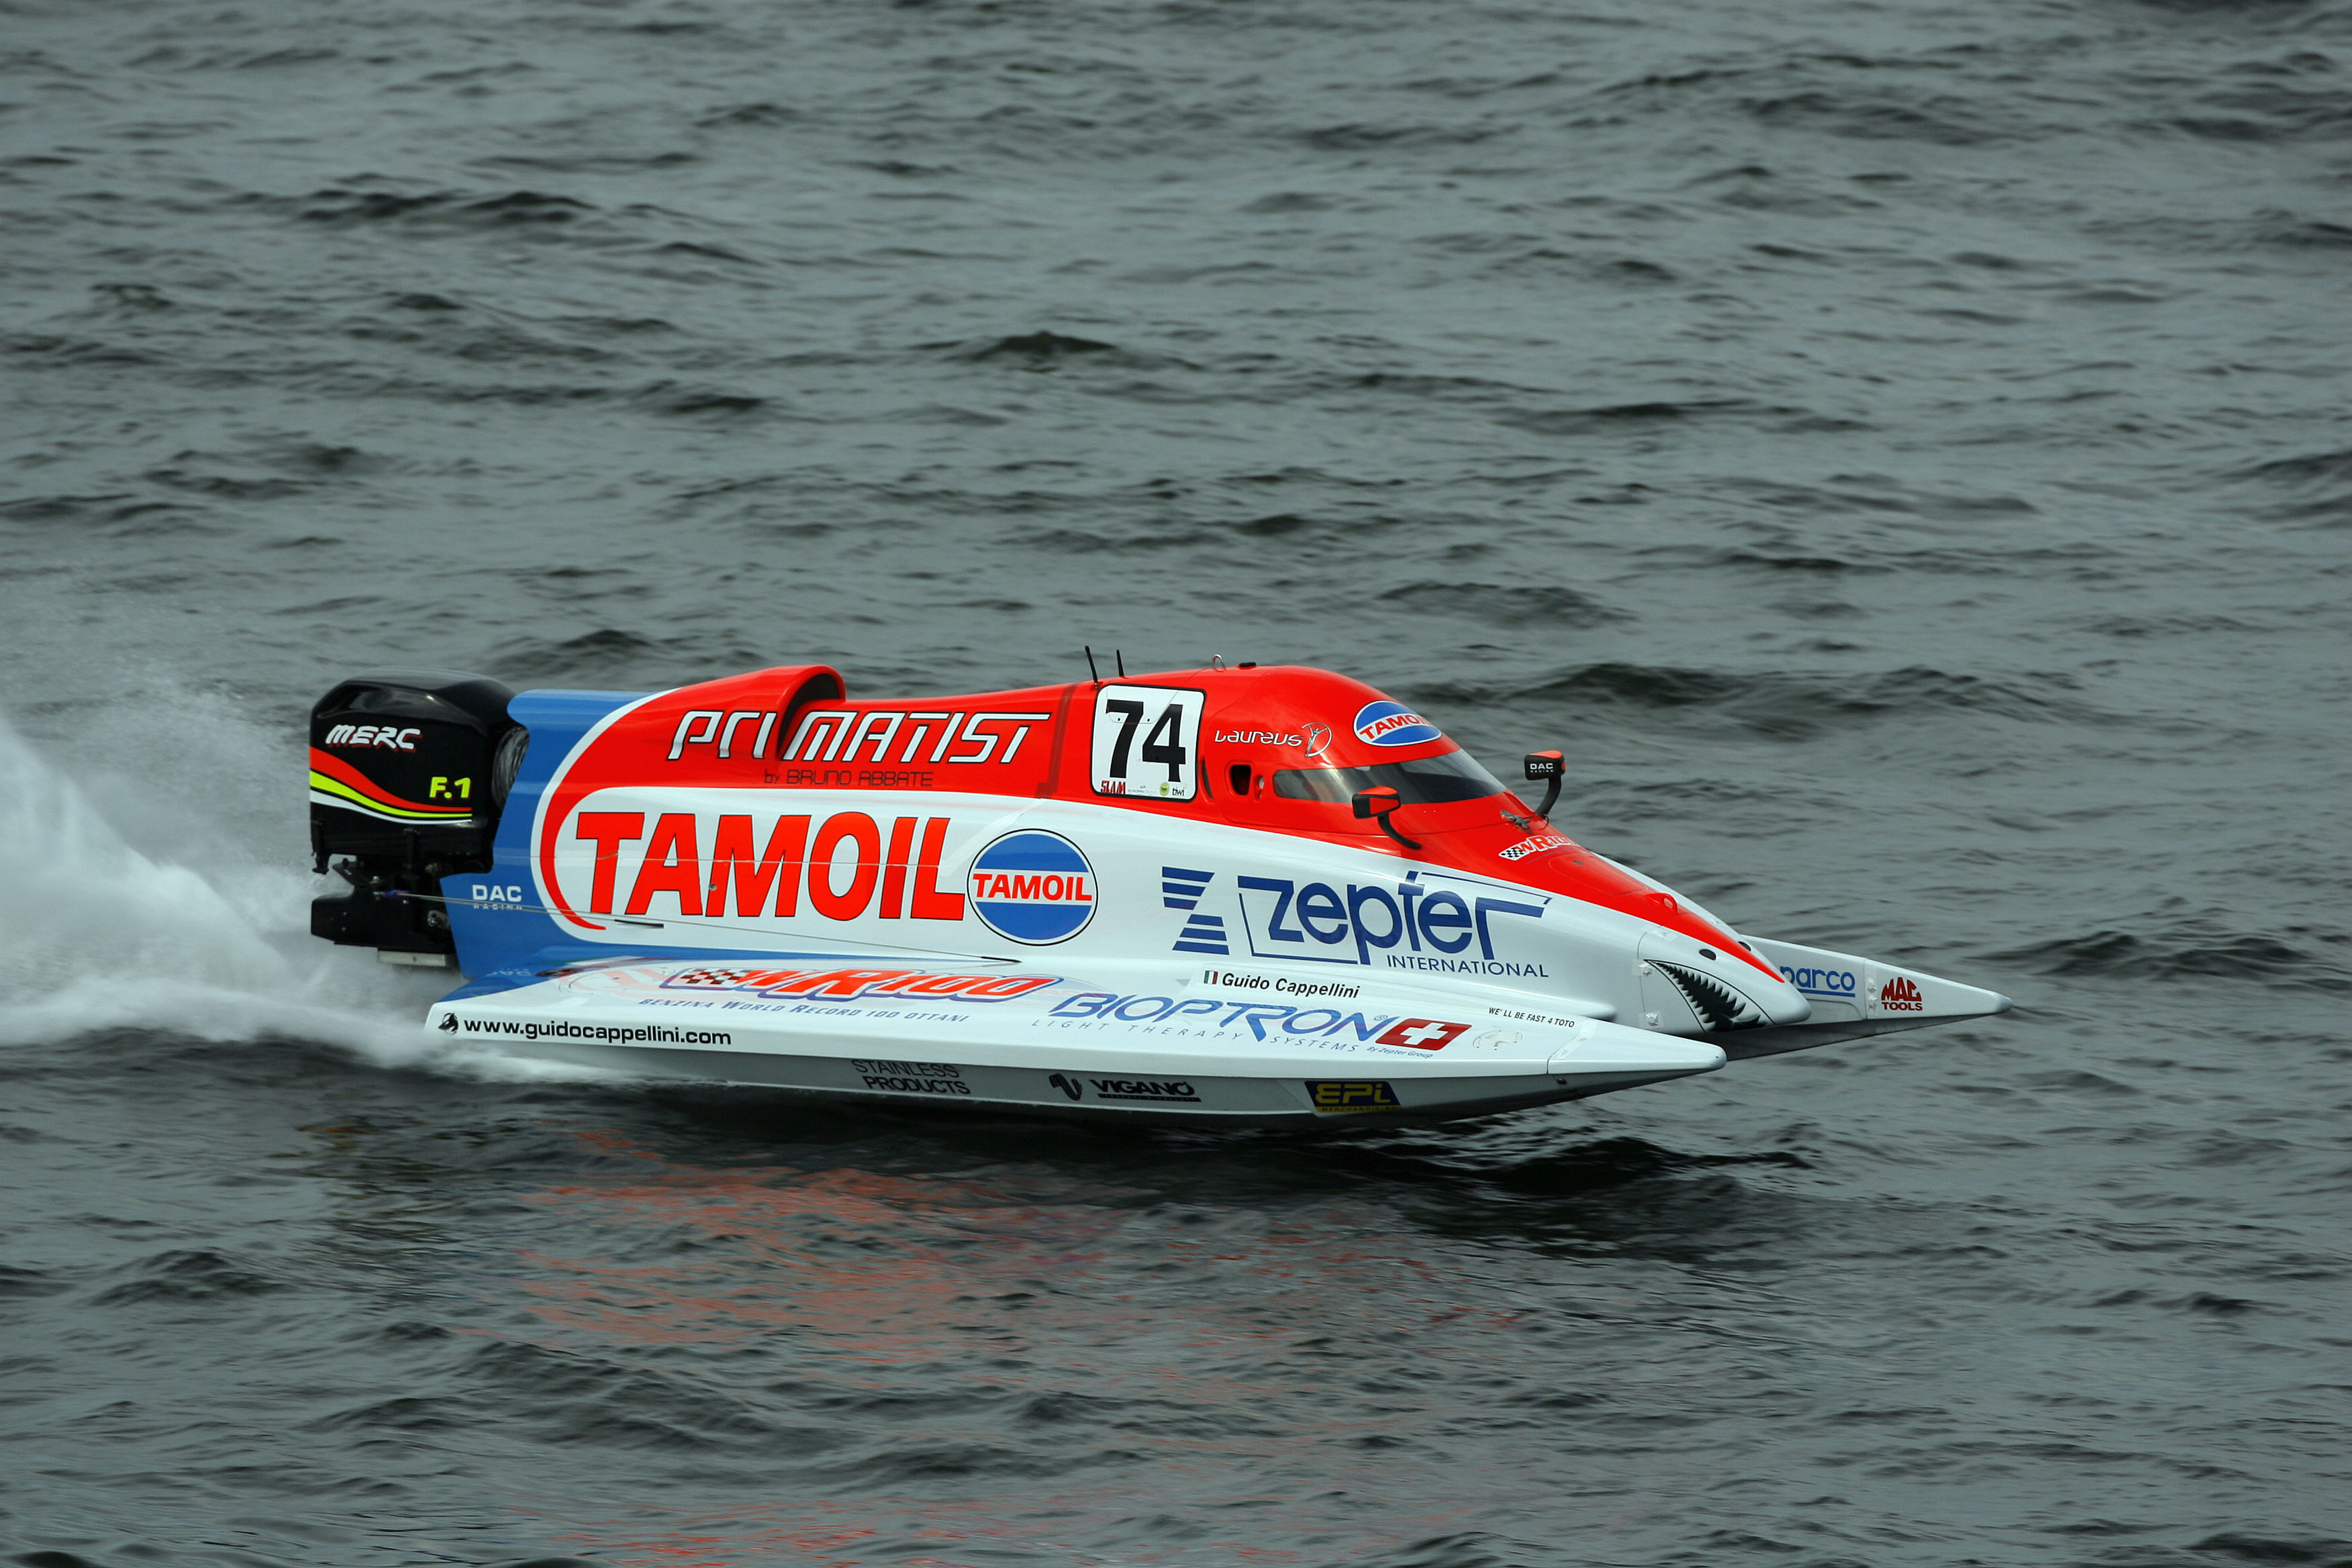 080608-GP OF FINLAND-Guido Cappellini of Italy of the Tamoil team in action the UIM F1 powerboat at the Grand Prix of Finland on Lake Lahti, June 8, 2008. Picture by Paul Lakatos/Idea Marketing.